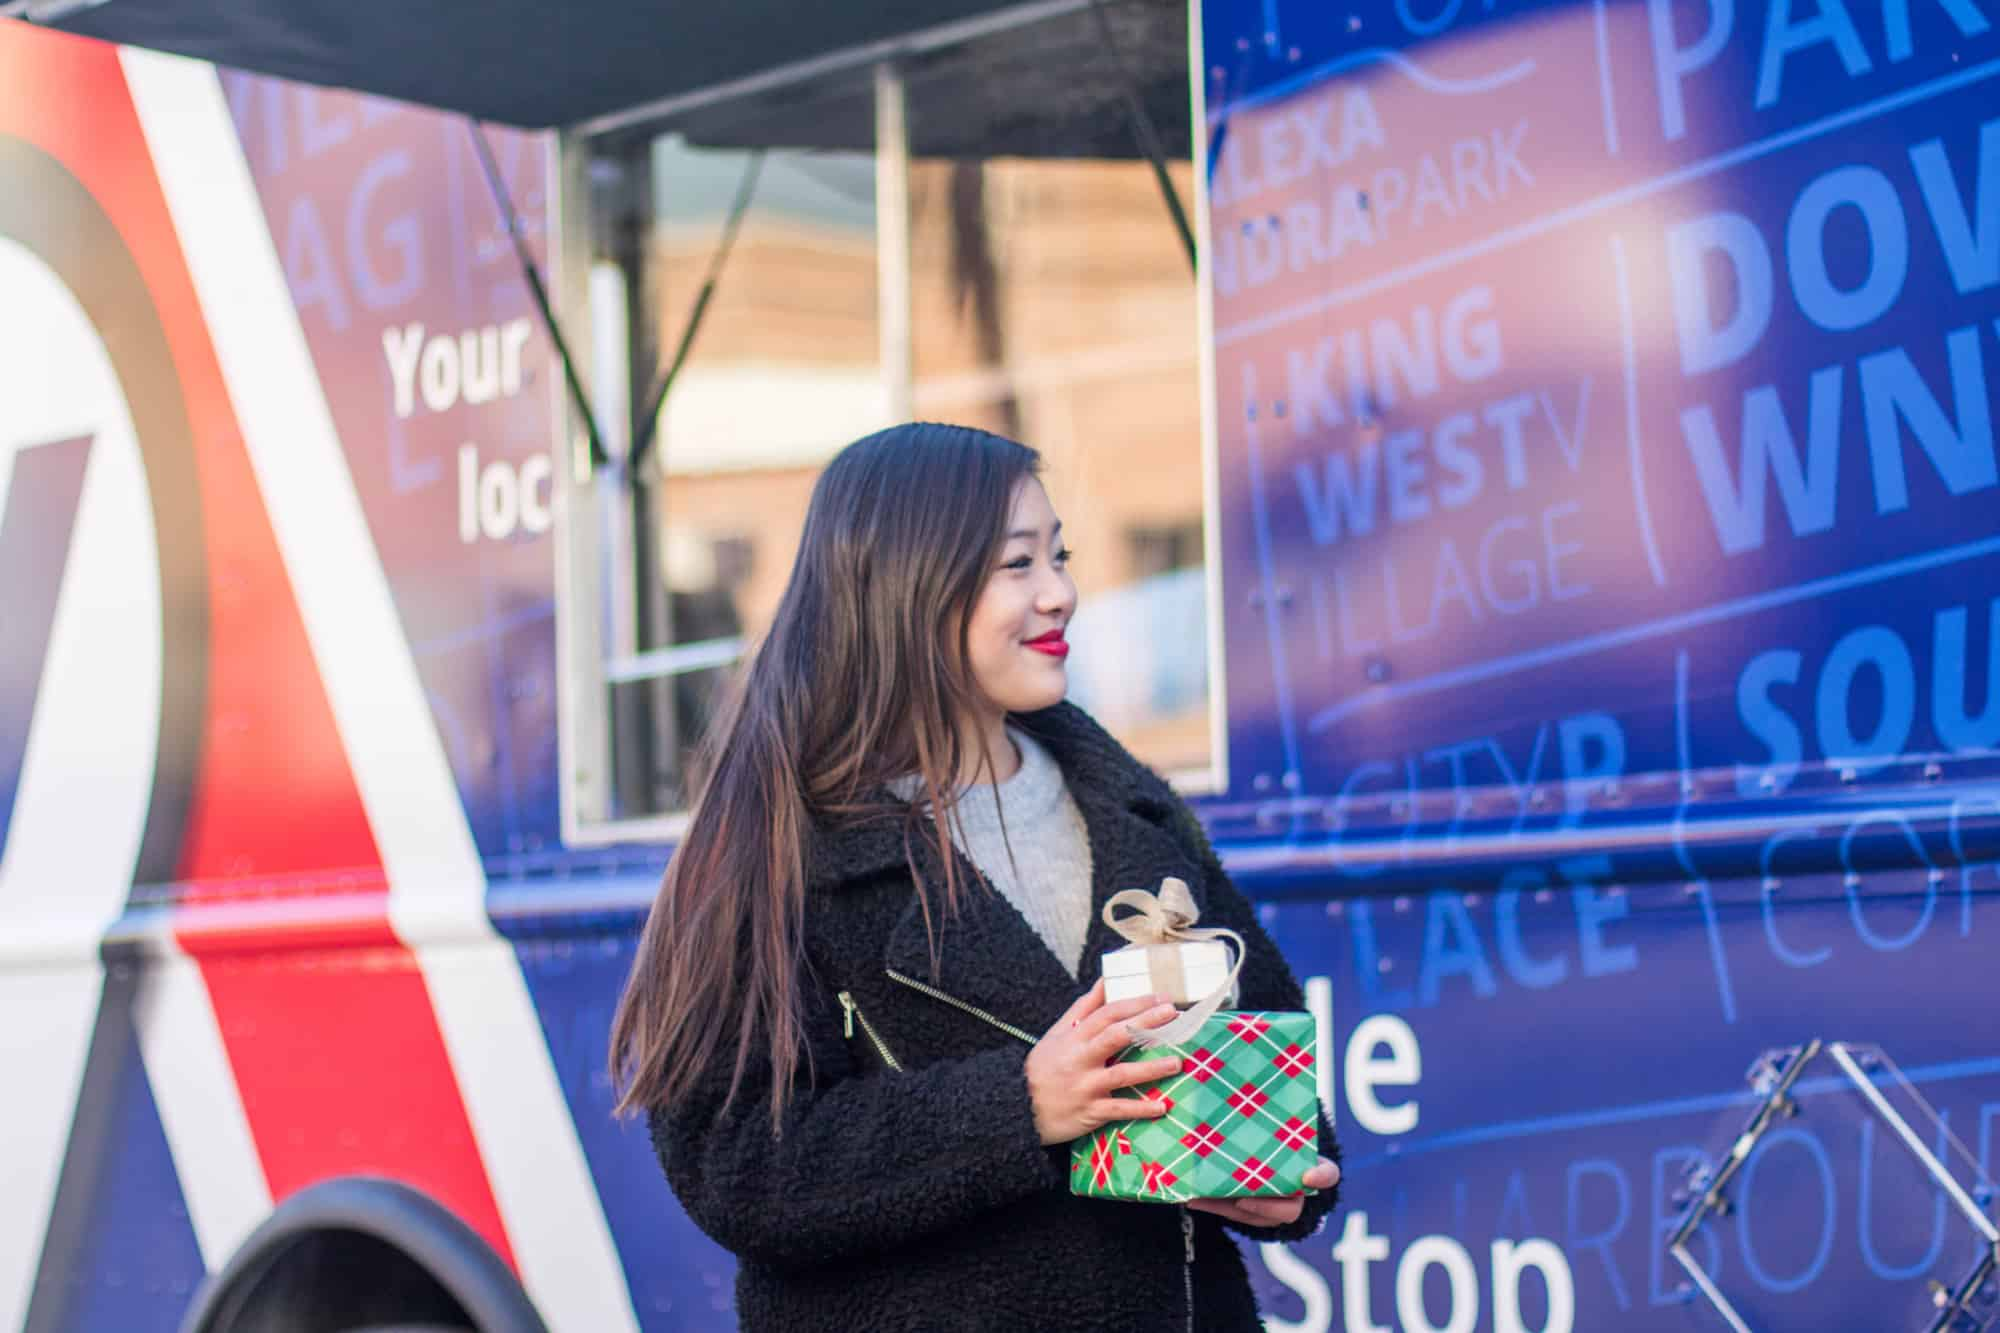 Purolator Canada | Mobile Quick Stop Truck | how to save time this holiday season in Toronto | how Torontonians can save time during the holidays